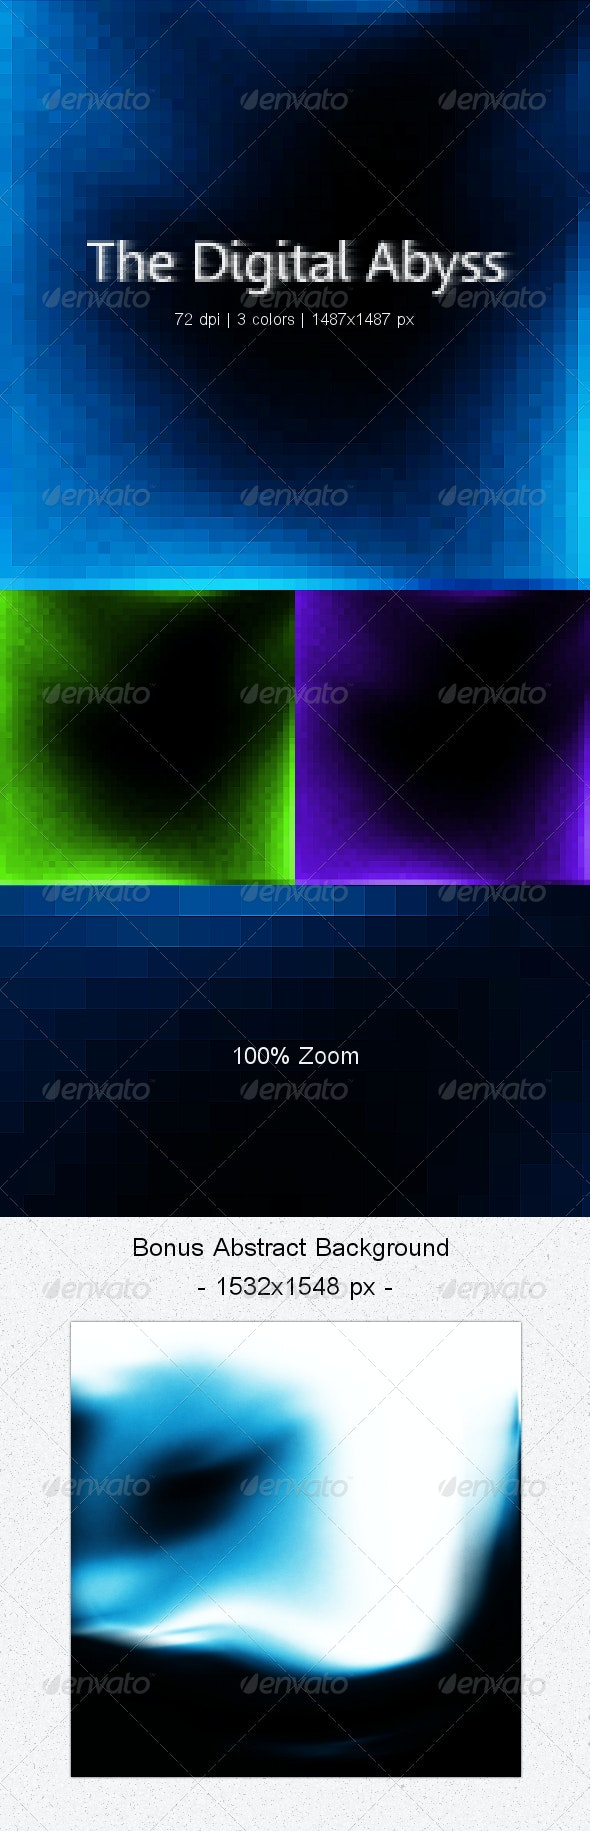 The Digital Abyss - Background - Abstract Backgrounds